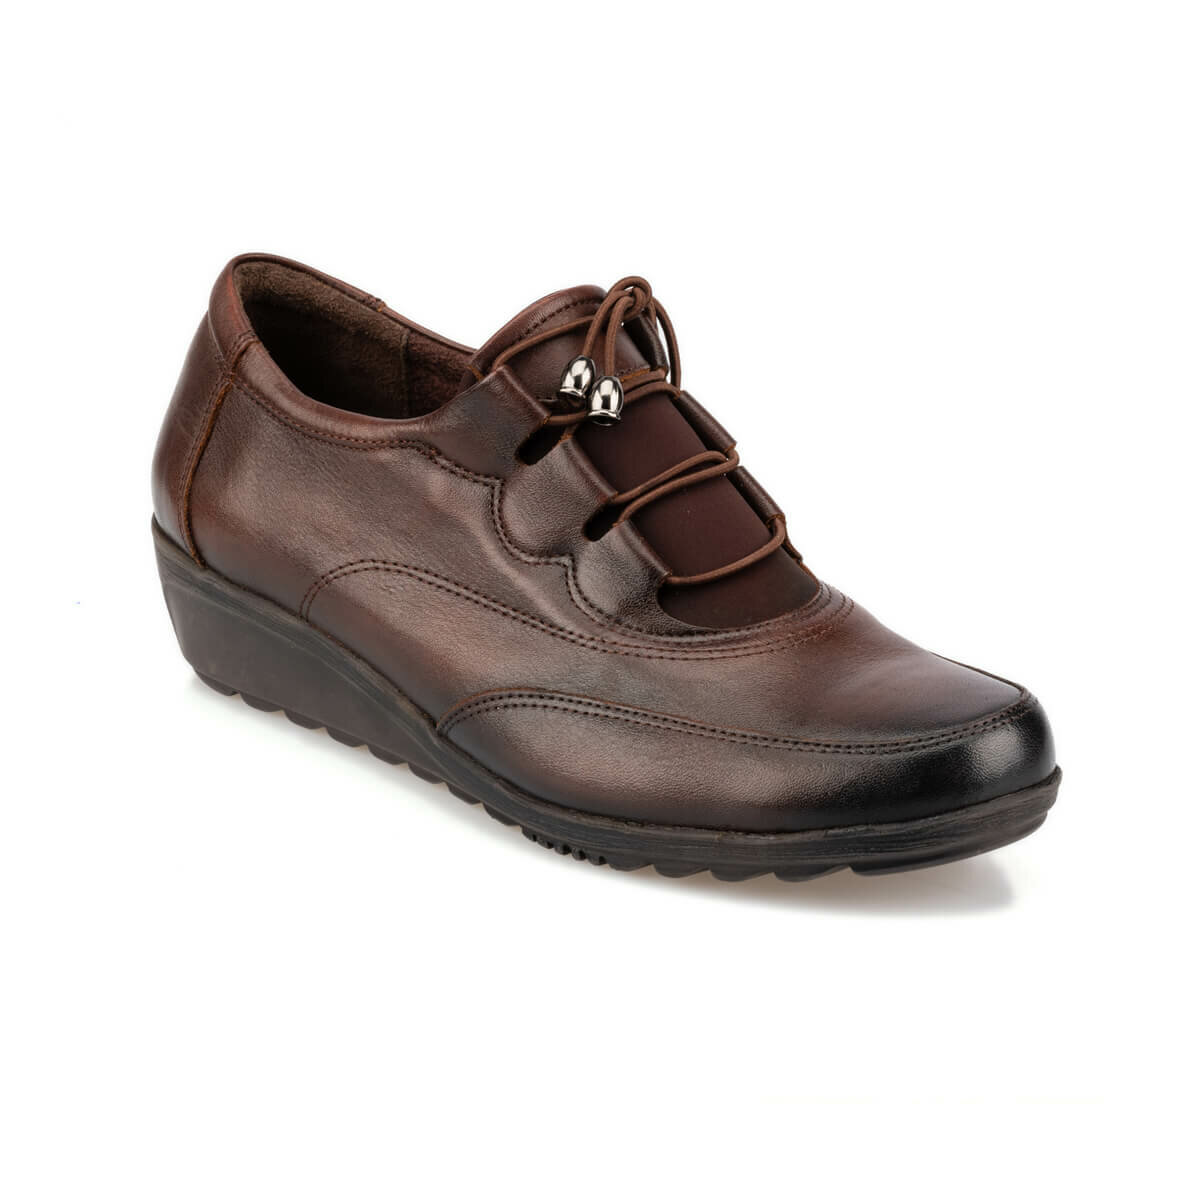 FLO 92.101011.Z Brown Women 'S Wedges Shoes Polaris 5 Point